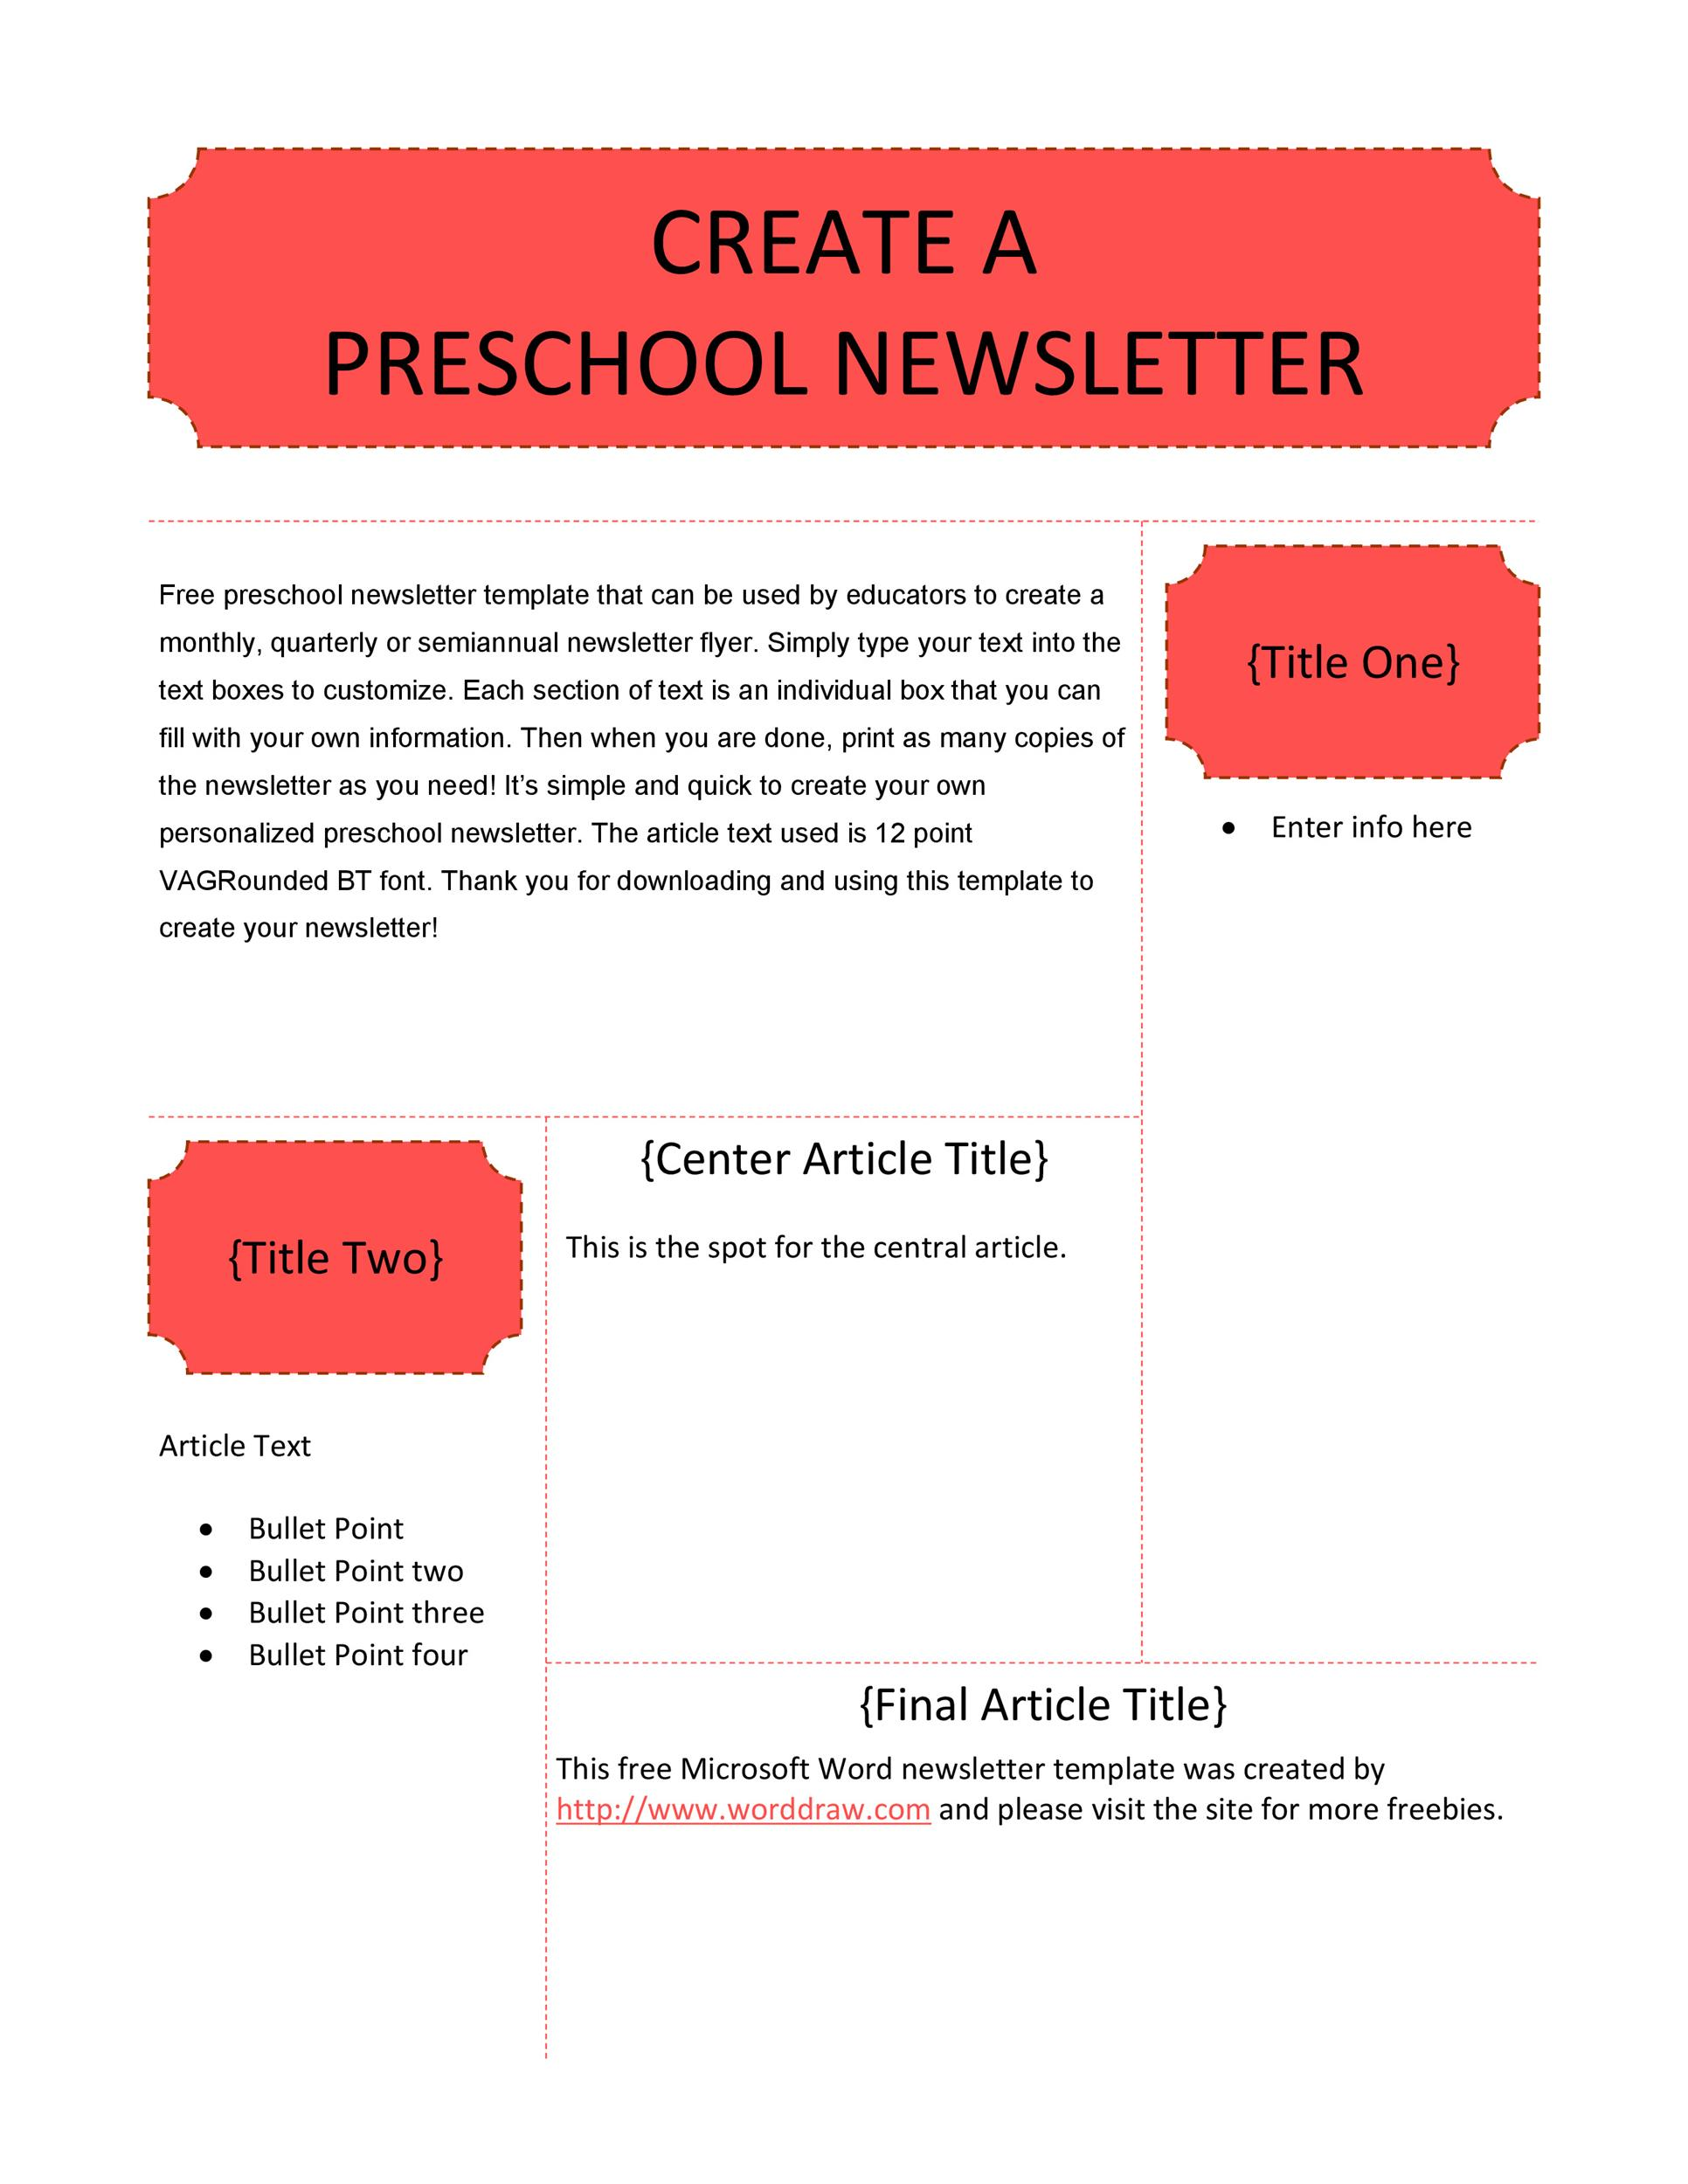 Free preschool newsletter template 08